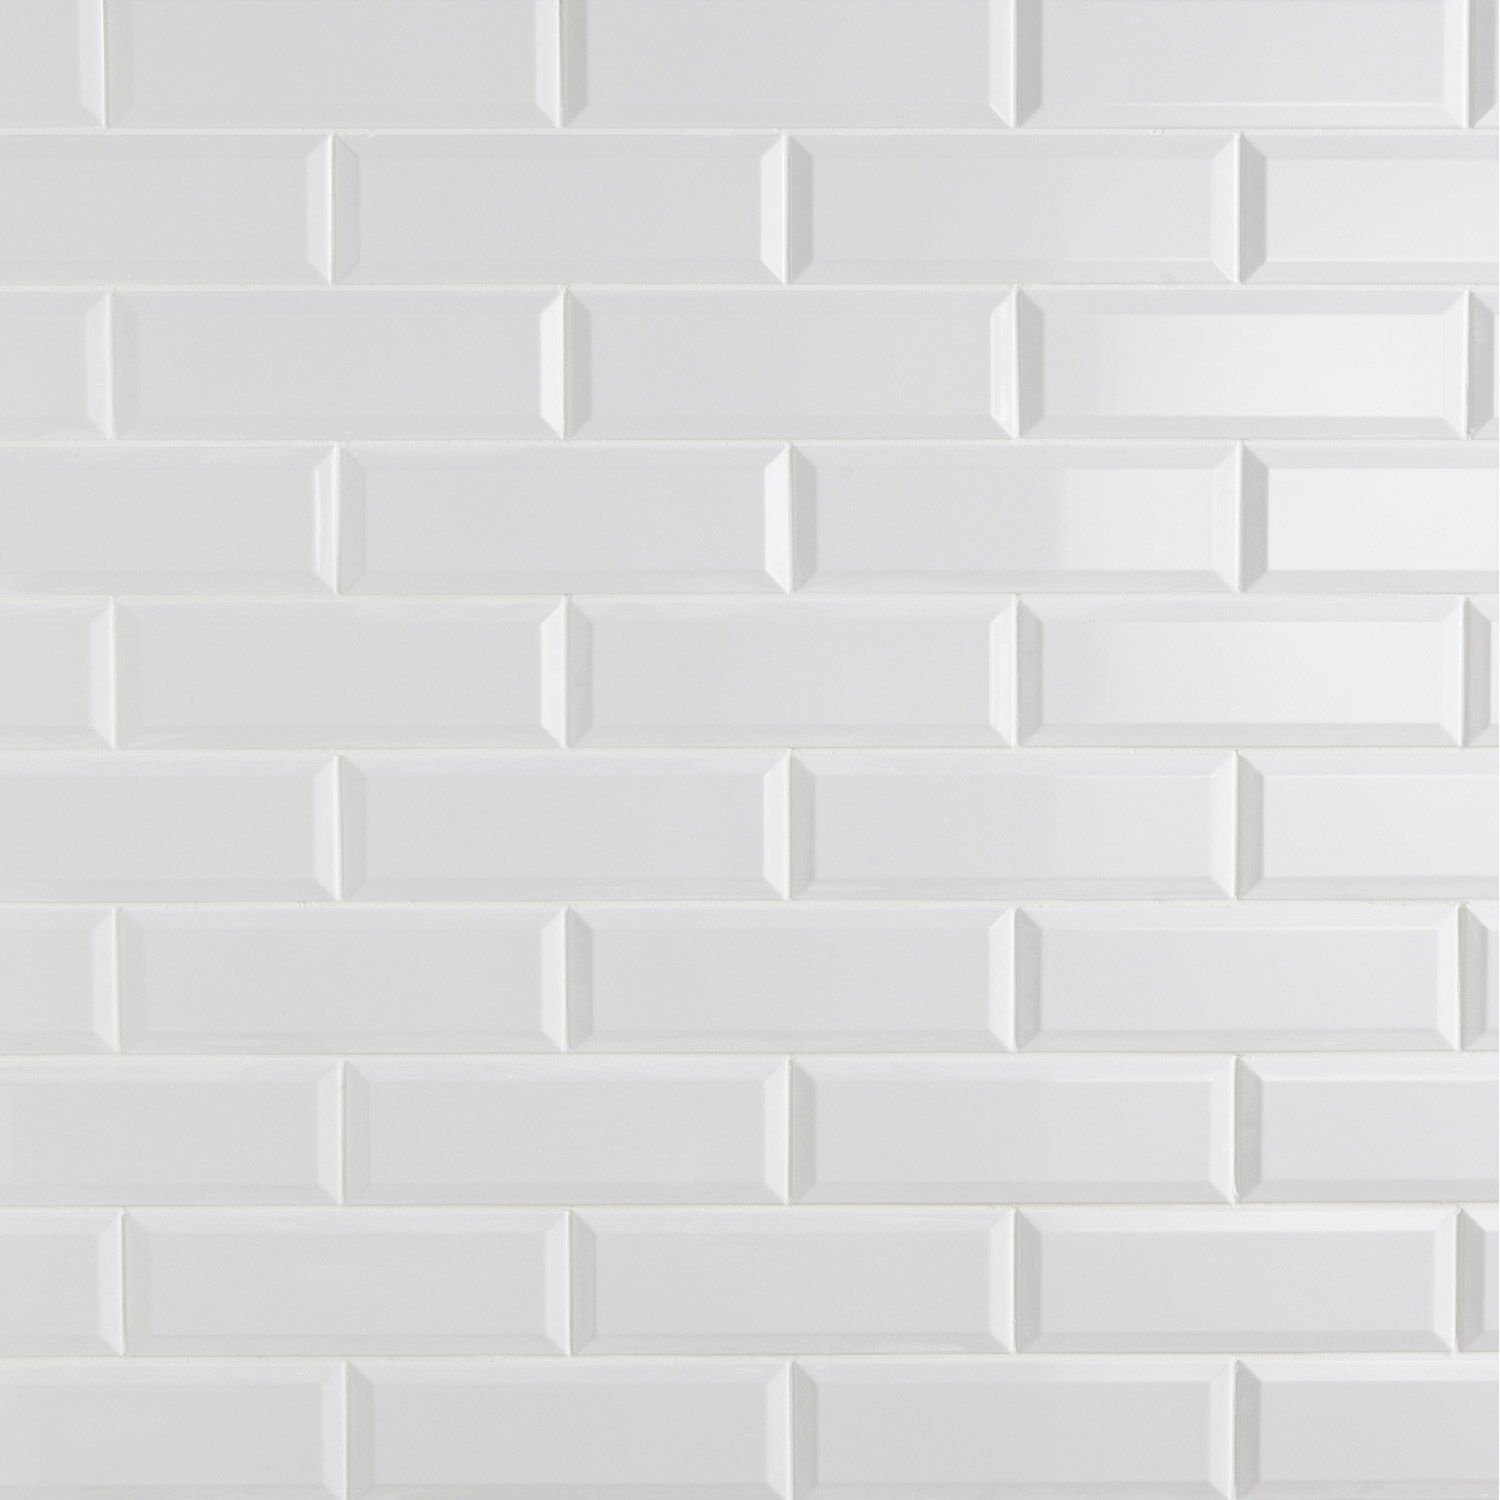 Destination du carrelage mur aspect mati re les blancs - Smart tiles chez leroy merlin ...